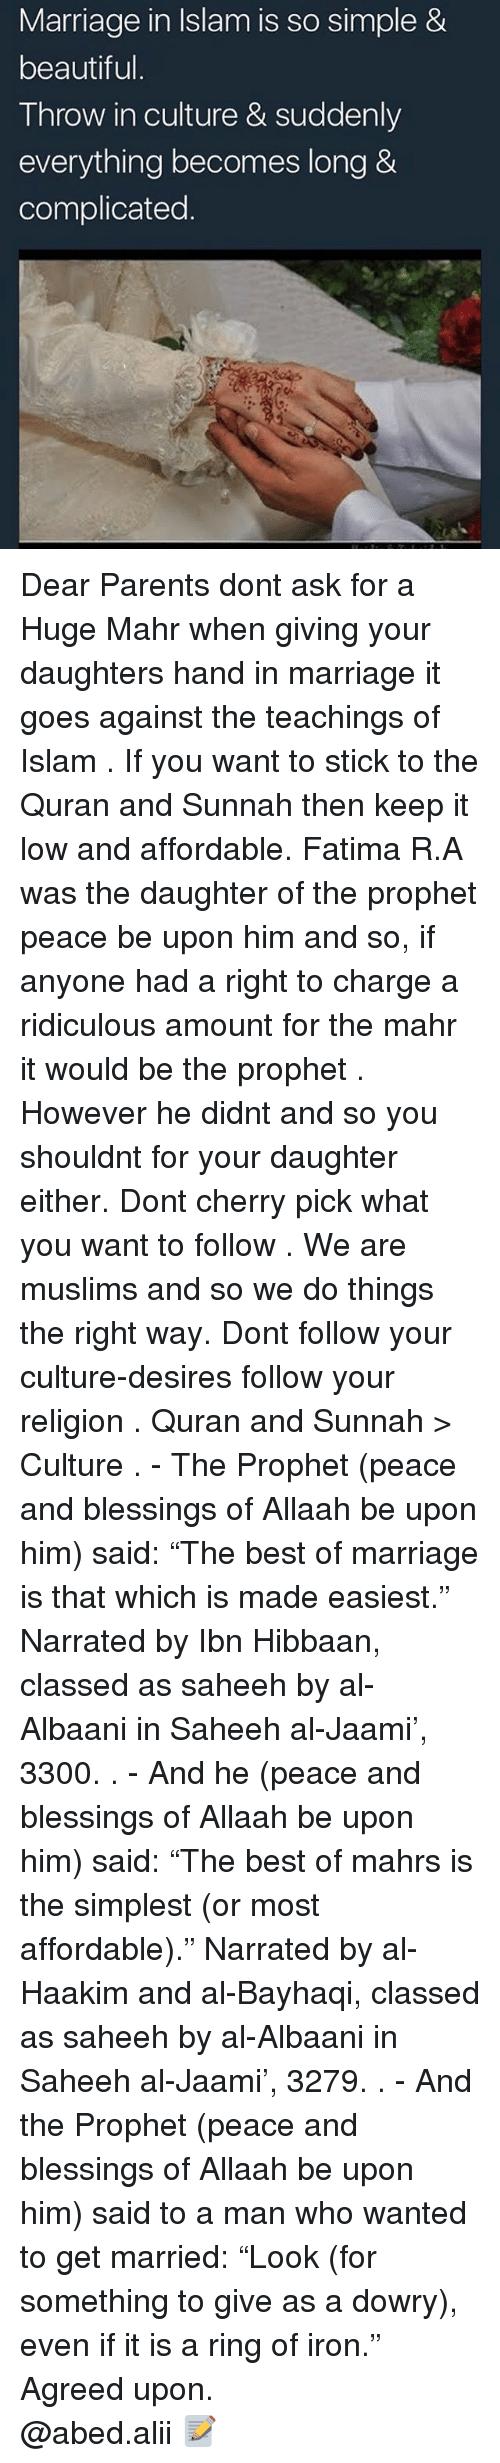 "Beautiful, Marriage, and Memes: Marriage in Islam is so simple &  beautiful  Throw in culture & suddenly  everything becomes long &  complicated Dear Parents dont ask for a Huge Mahr when giving your daughters hand in marriage it goes against the teachings of Islam . If you want to stick to the Quran and Sunnah then keep it low and affordable. Fatima R.A was the daughter of the prophet peace be upon him and so, if anyone had a right to charge a ridiculous amount for the mahr it would be the prophet . However he didnt and so you shouldnt for your daughter either. Dont cherry pick what you want to follow . We are muslims and so we do things the right way. Dont follow your culture-desires follow your religion . Quran and Sunnah > Culture . - The Prophet (peace and blessings of Allaah be upon him) said: ""The best of marriage is that which is made easiest."" Narrated by Ibn Hibbaan, classed as saheeh by al-Albaani in Saheeh al-Jaami', 3300. . - And he (peace and blessings of Allaah be upon him) said: ""The best of mahrs is the simplest (or most affordable)."" Narrated by al-Haakim and al-Bayhaqi, classed as saheeh by al-Albaani in Saheeh al-Jaami', 3279. . - And the Prophet (peace and blessings of Allaah be upon him) said to a man who wanted to get married: ""Look (for something to give as a dowry), even if it is a ring of iron."" Agreed upon. ▃▃▃▃▃▃▃▃▃▃▃▃▃▃▃▃▃▃▃▃ @abed.alii 📝"